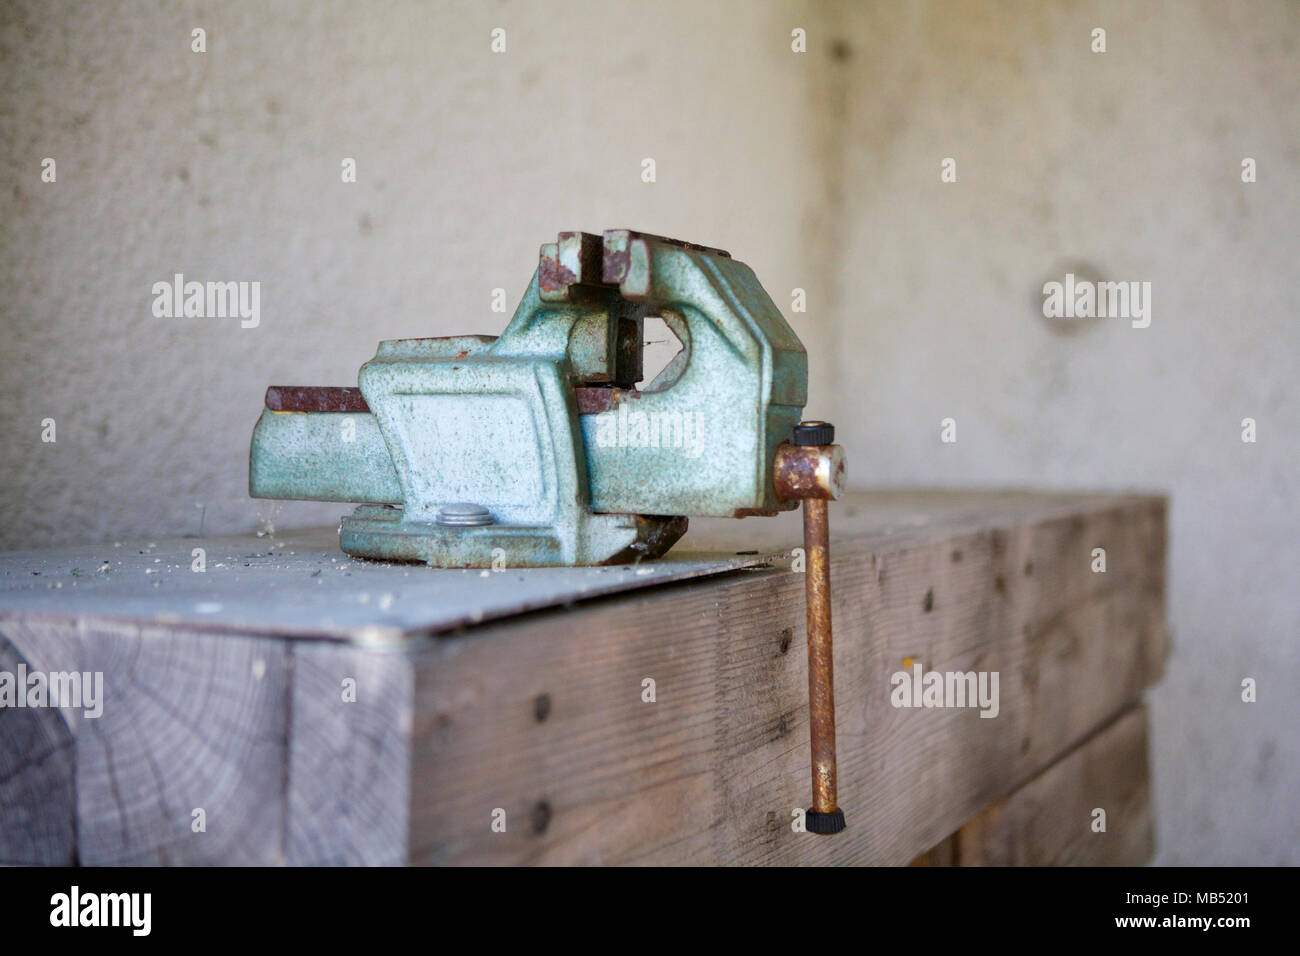 Vise clamp on wooden working table - Stock Image